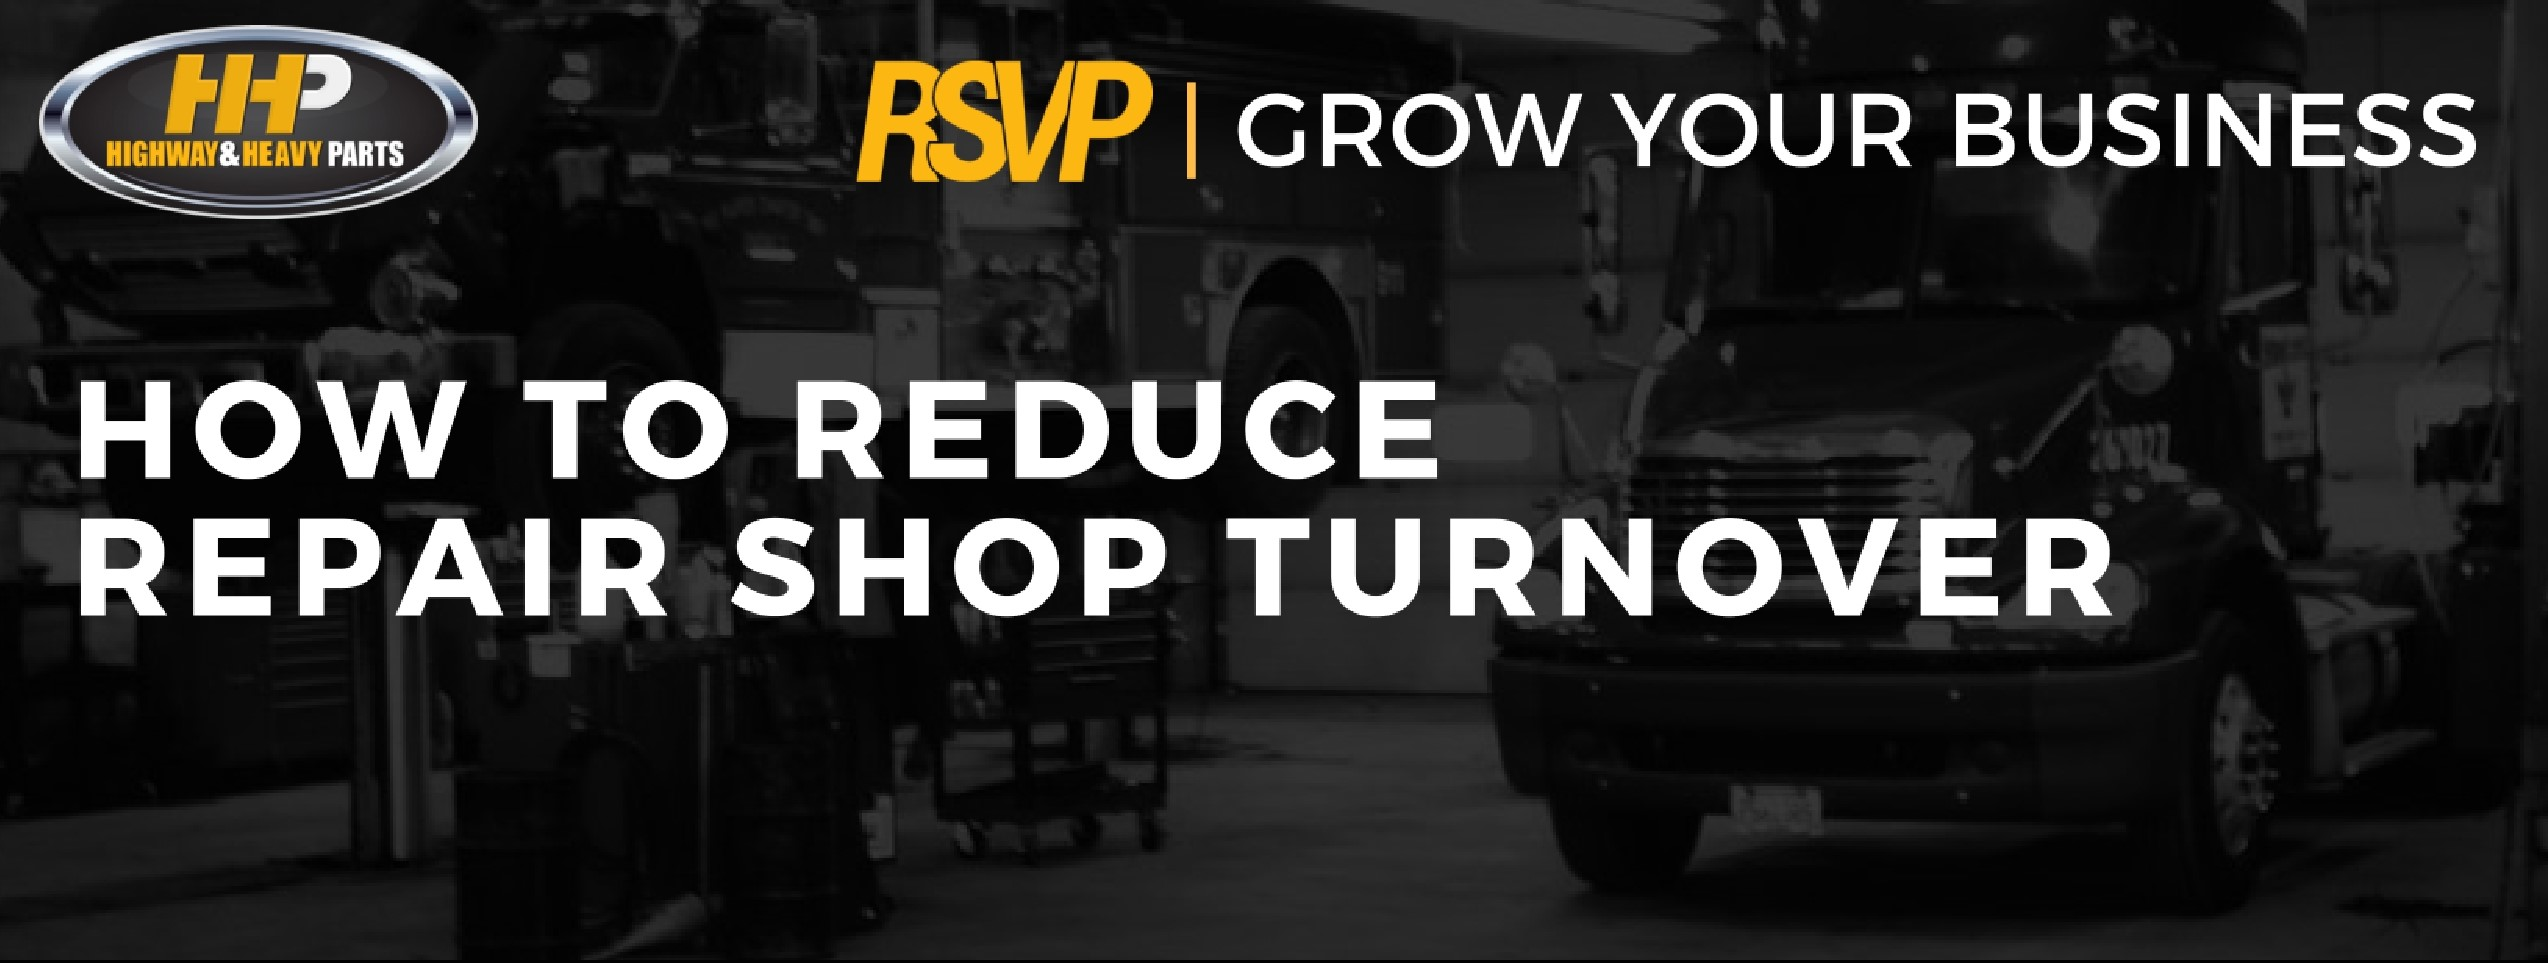 How to Reduce Repair Shop Turnover